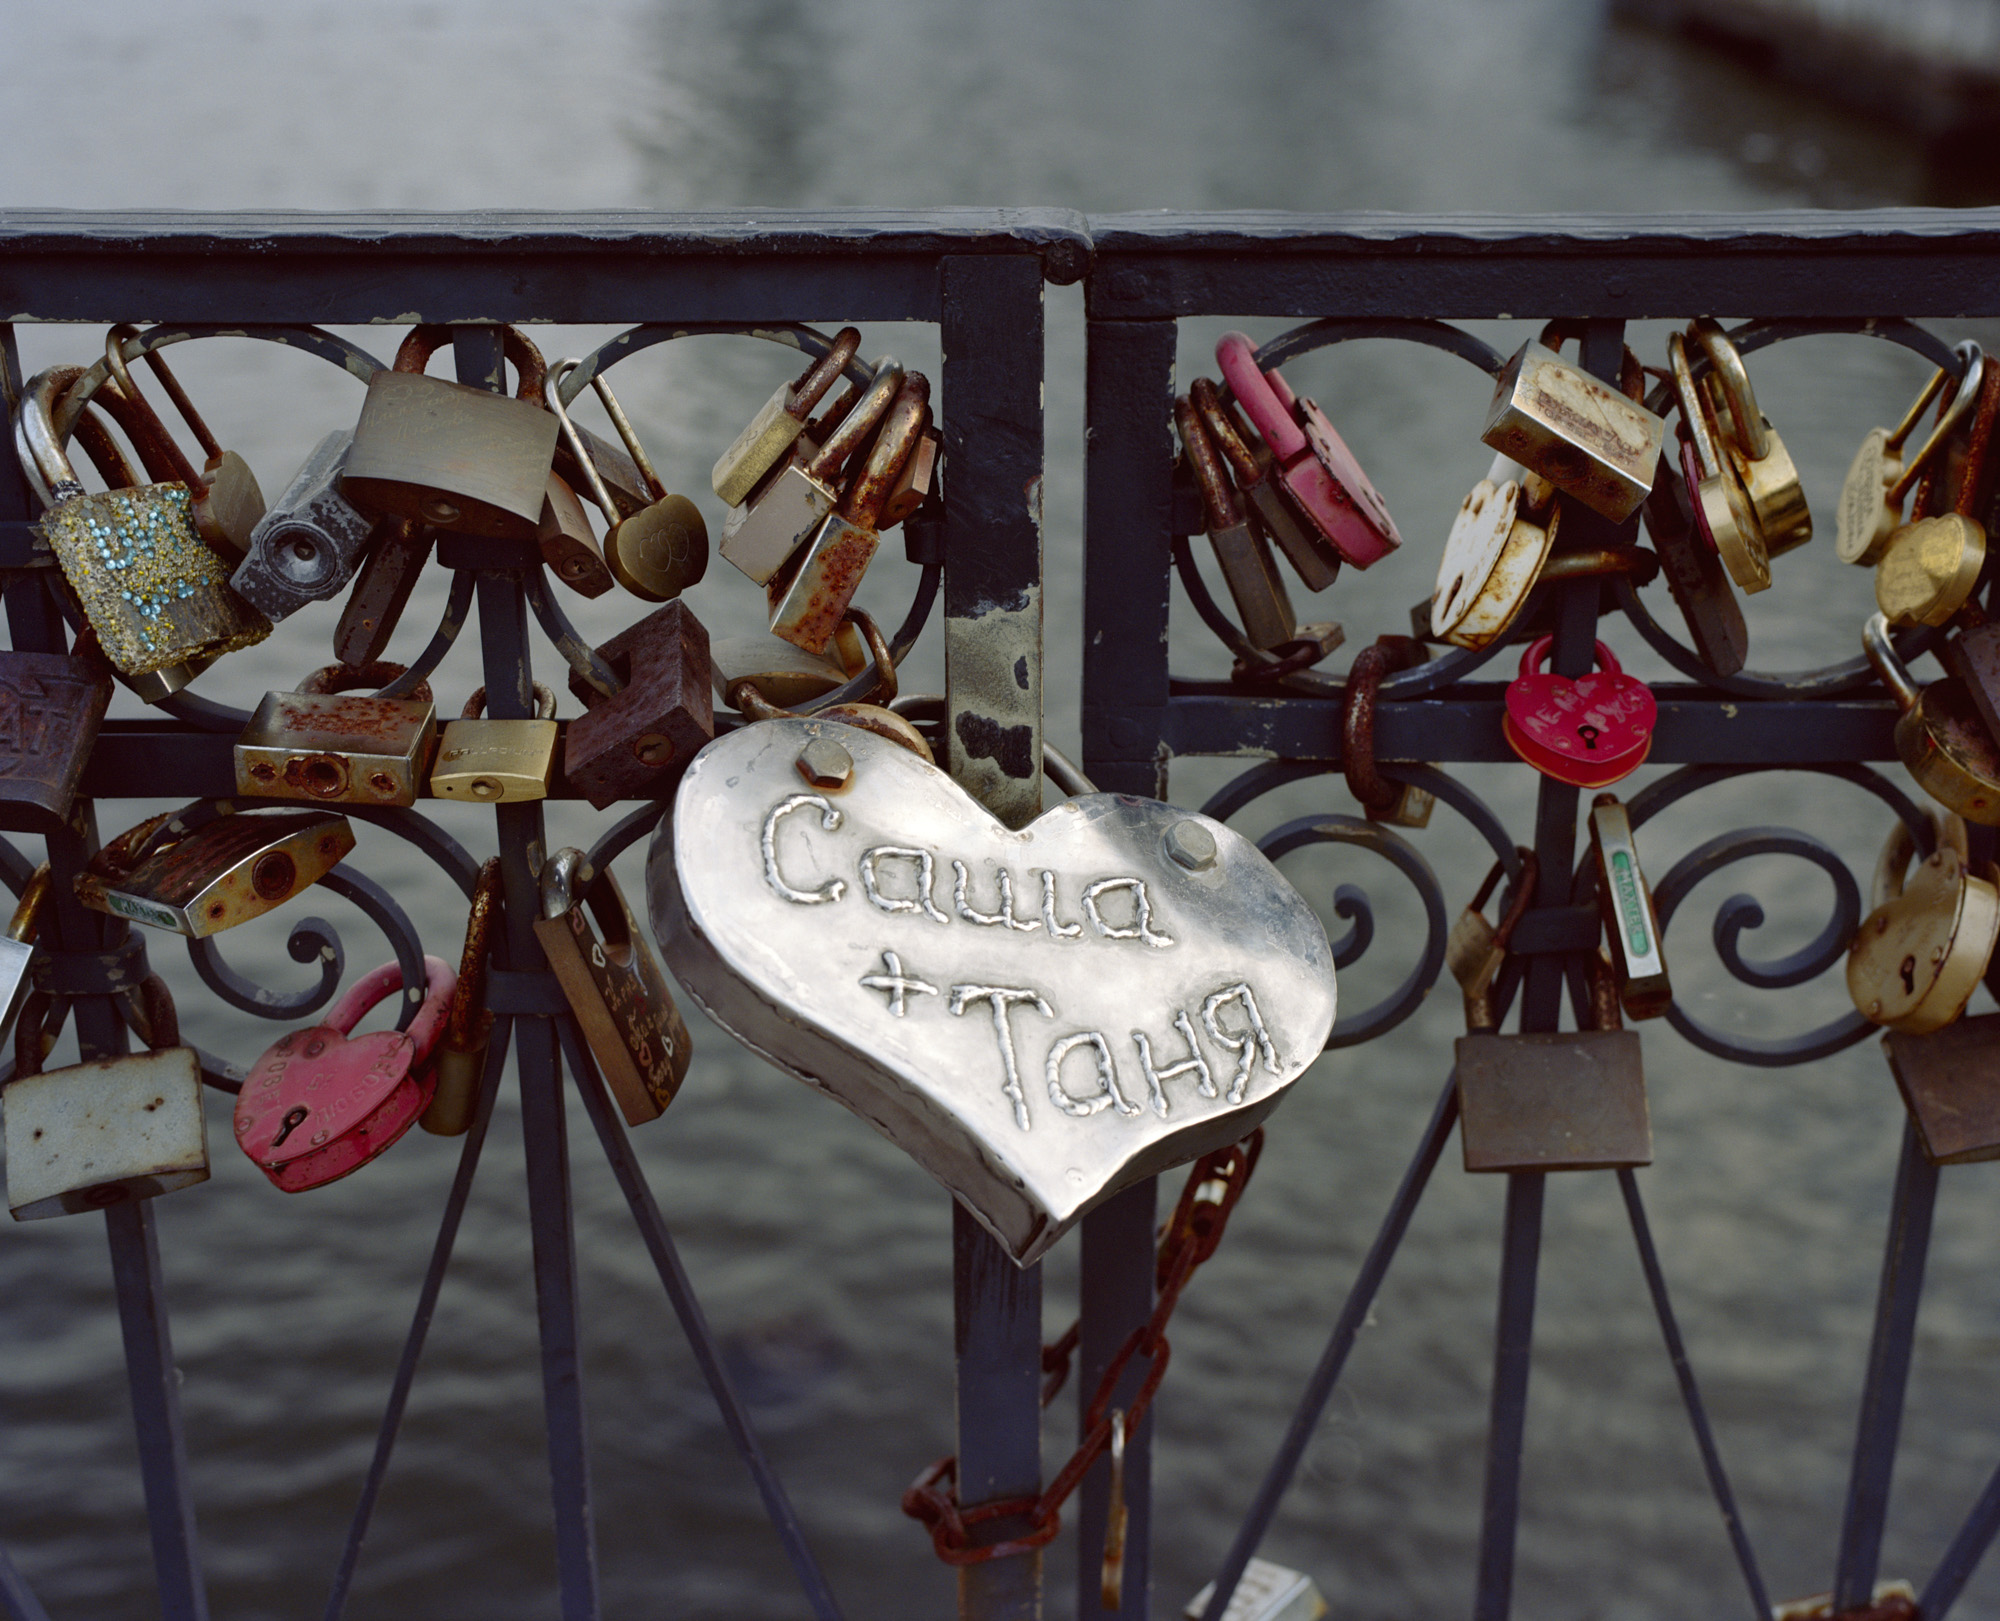 15-Love bridge, Kaliningrad 2015